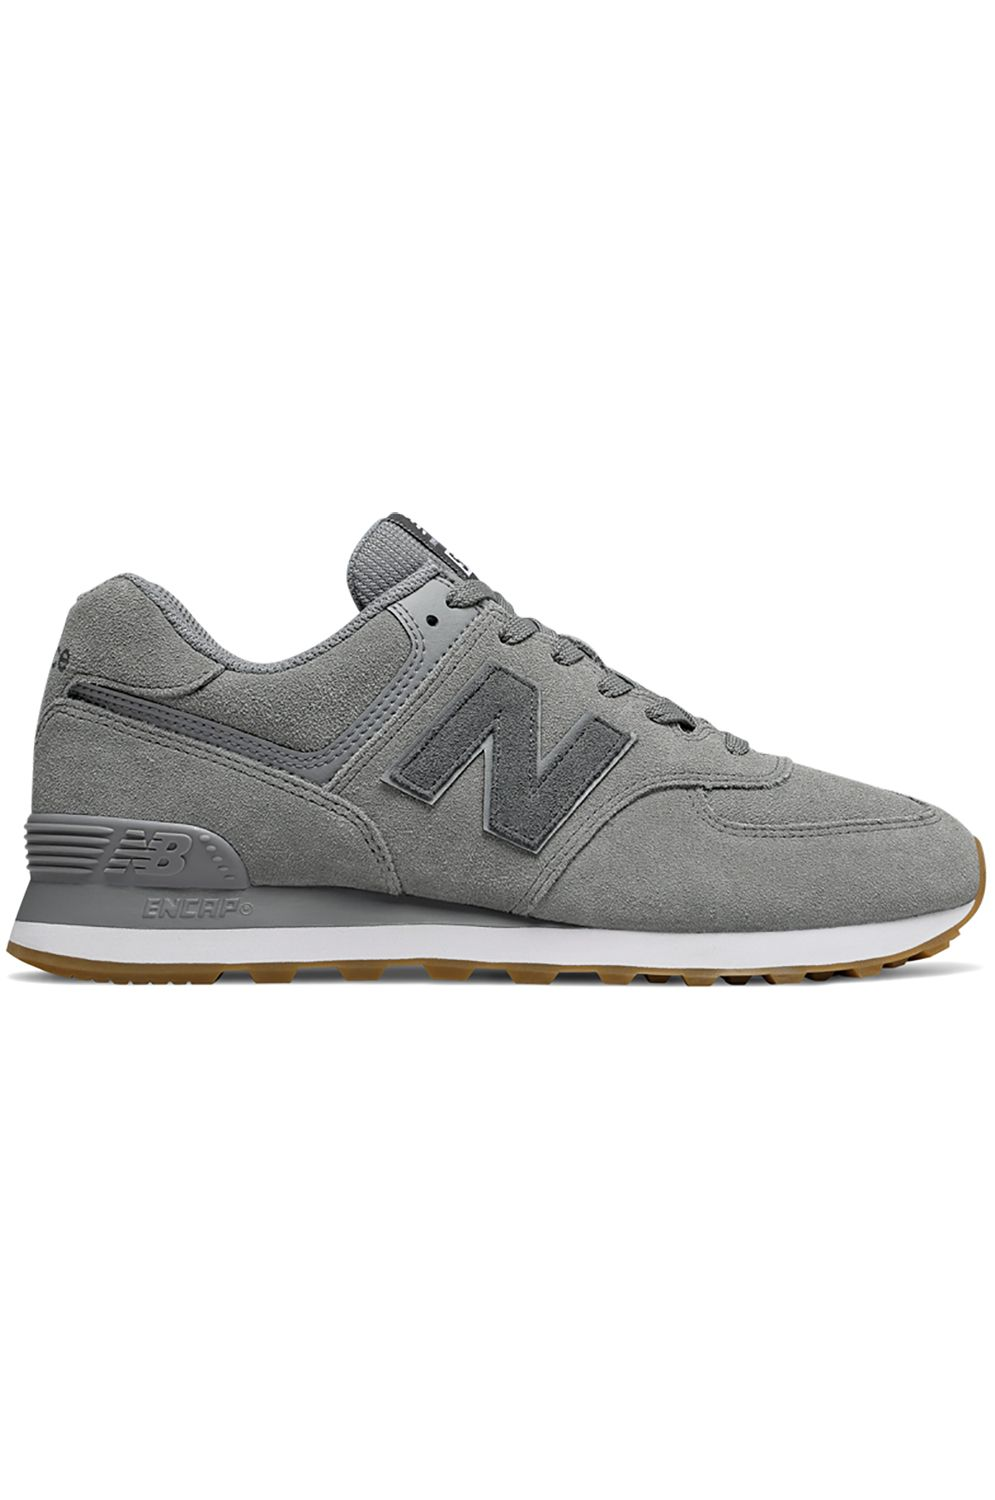 Tenis New Balance ML574 Grey/White